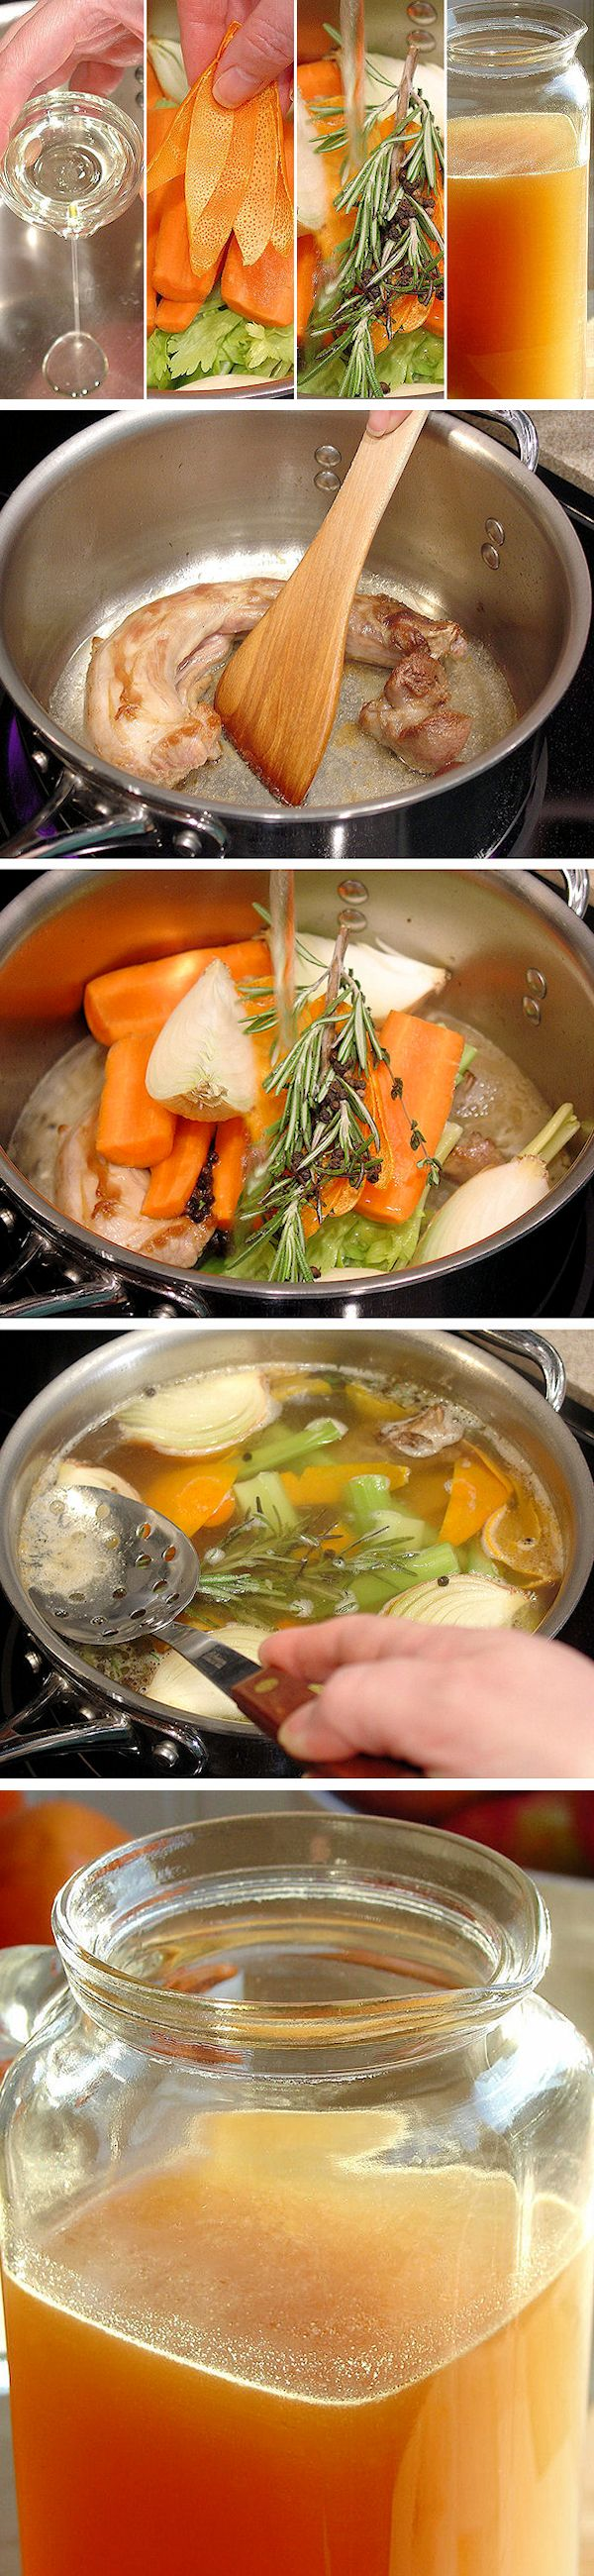 TURKEY STOCK 101: Step-by-Step Tutorial with Photos & Instructions plus 10 Tips for Making Stock ~ Simply the BEST recipe! Perfect for #Thanksgiving and #Christmas #Holidays, our homemade stock with bright flavor notes gives an unbeatable rich turkey flavor to homemade gravy and stuffing. BONUS: Includes Recipe for Day-After Turkey Stock and How To Make Homemade Bouillon.